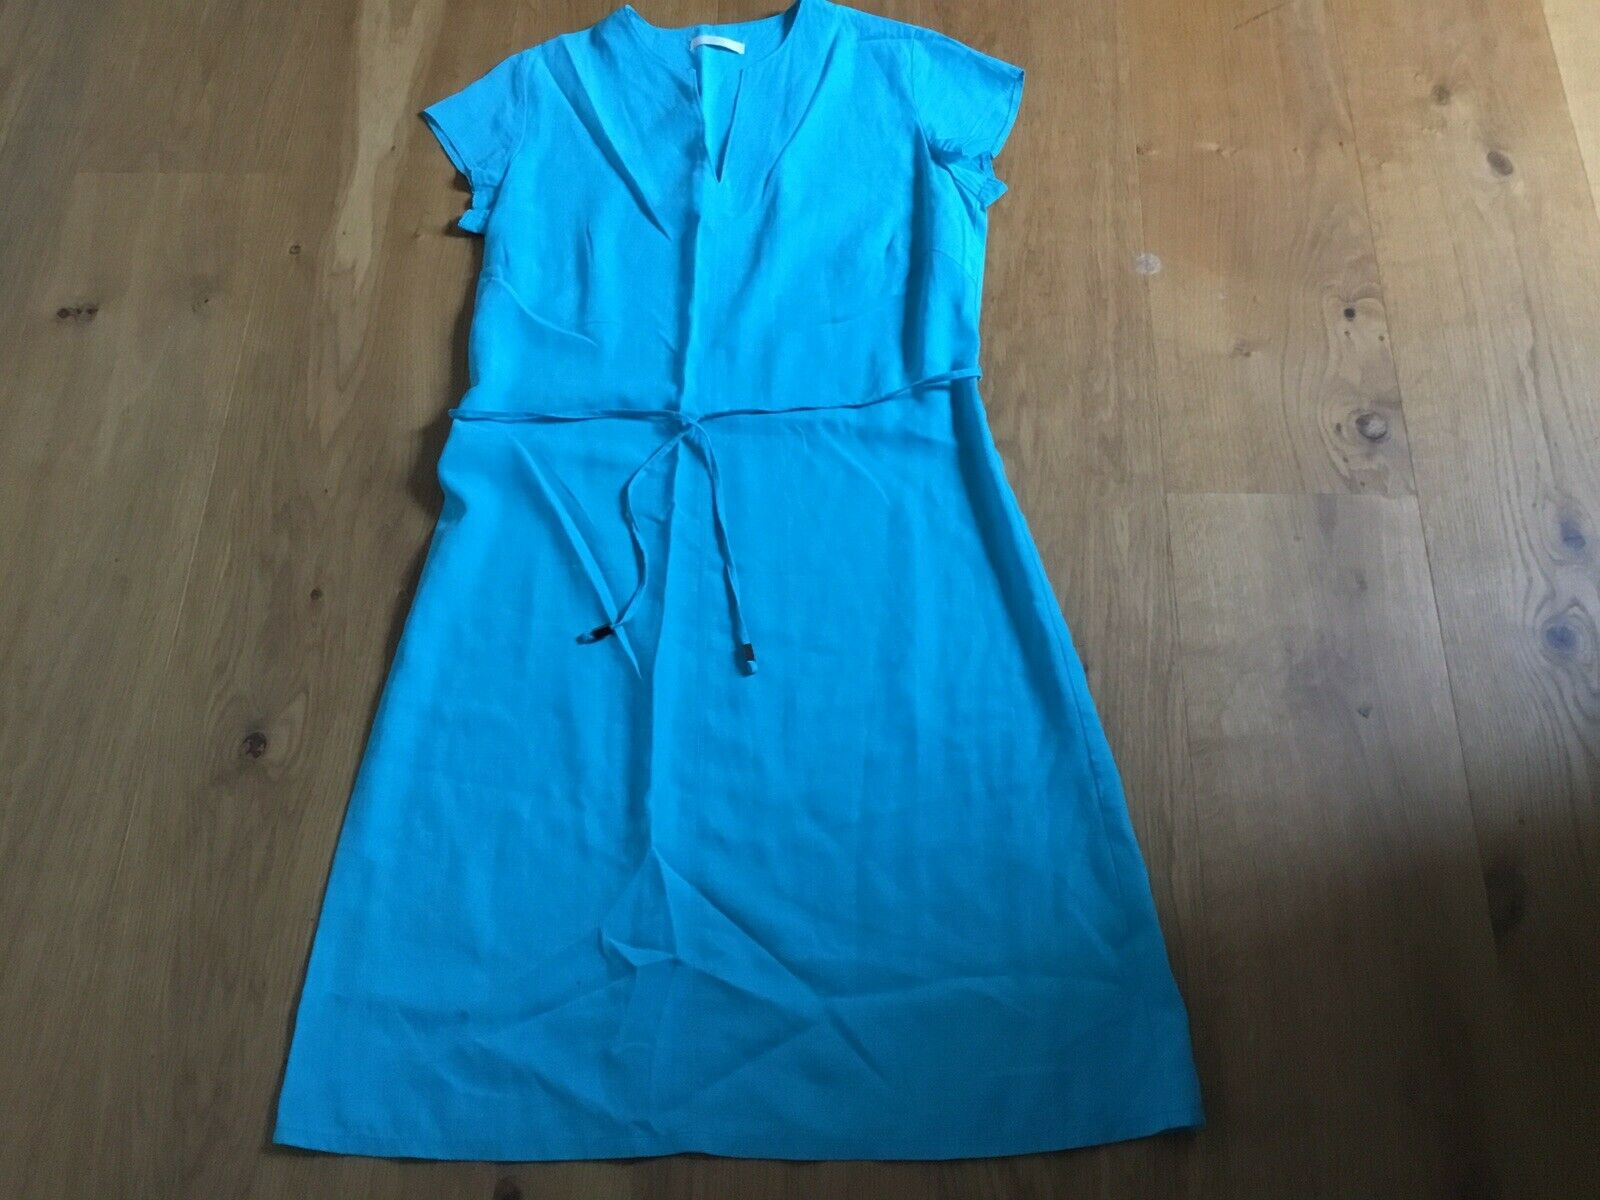 marks and spencer Turqouise Dress Size 12 Linen Mix